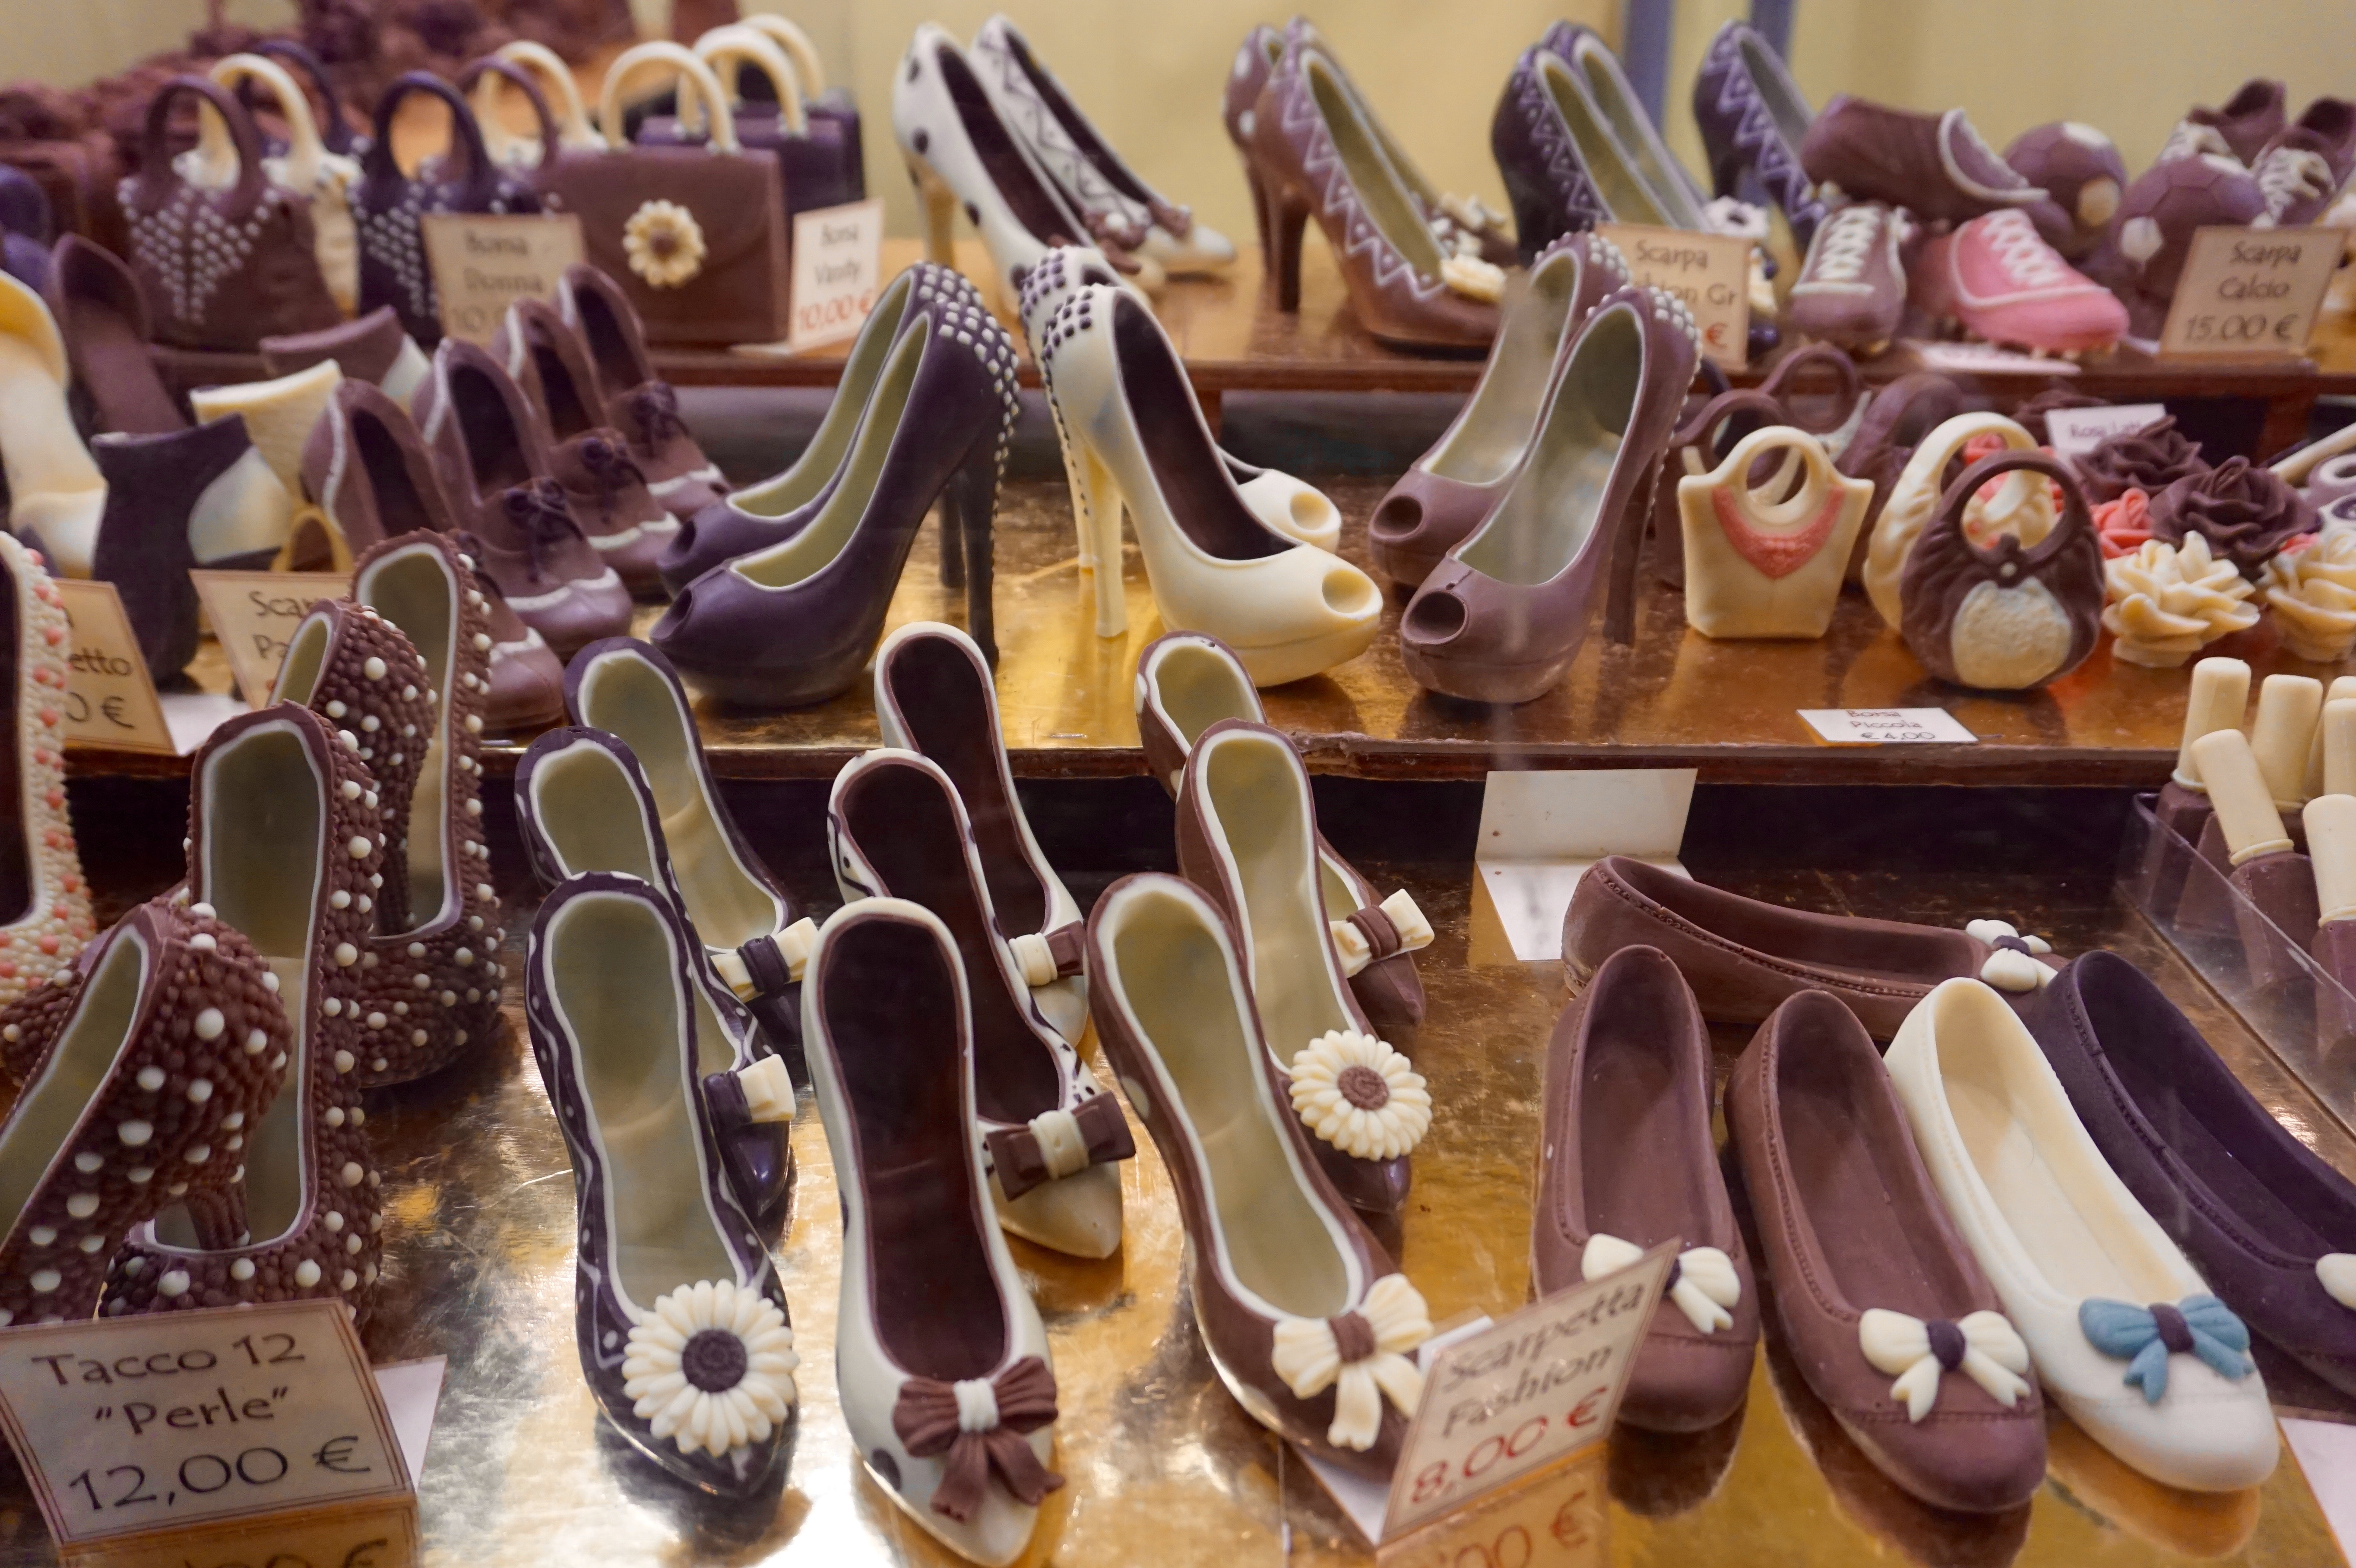 Yes, those are chocolate heels.